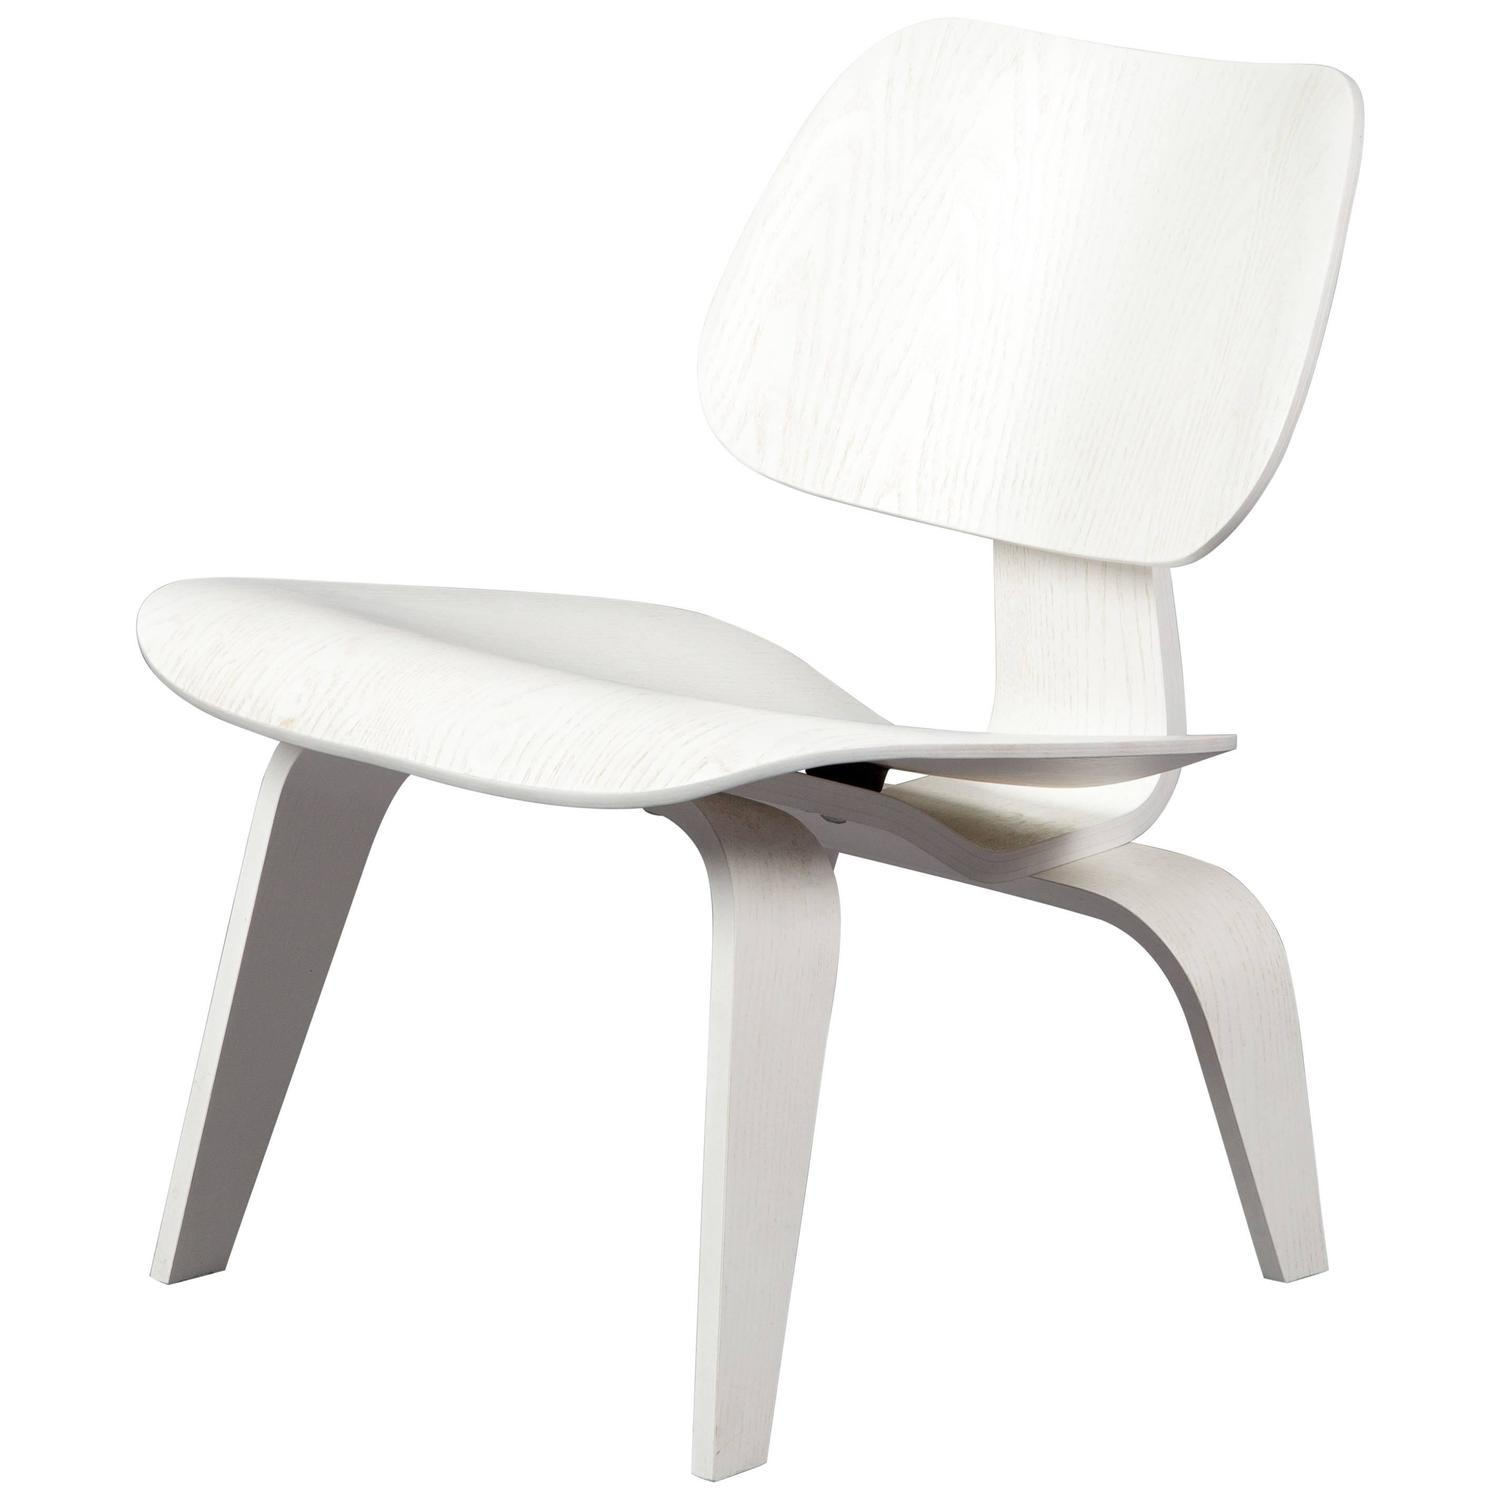 U0027LCWu0027 LOUNGE CHAIR WOOD White Limited Edition Eames Vitra. U0027